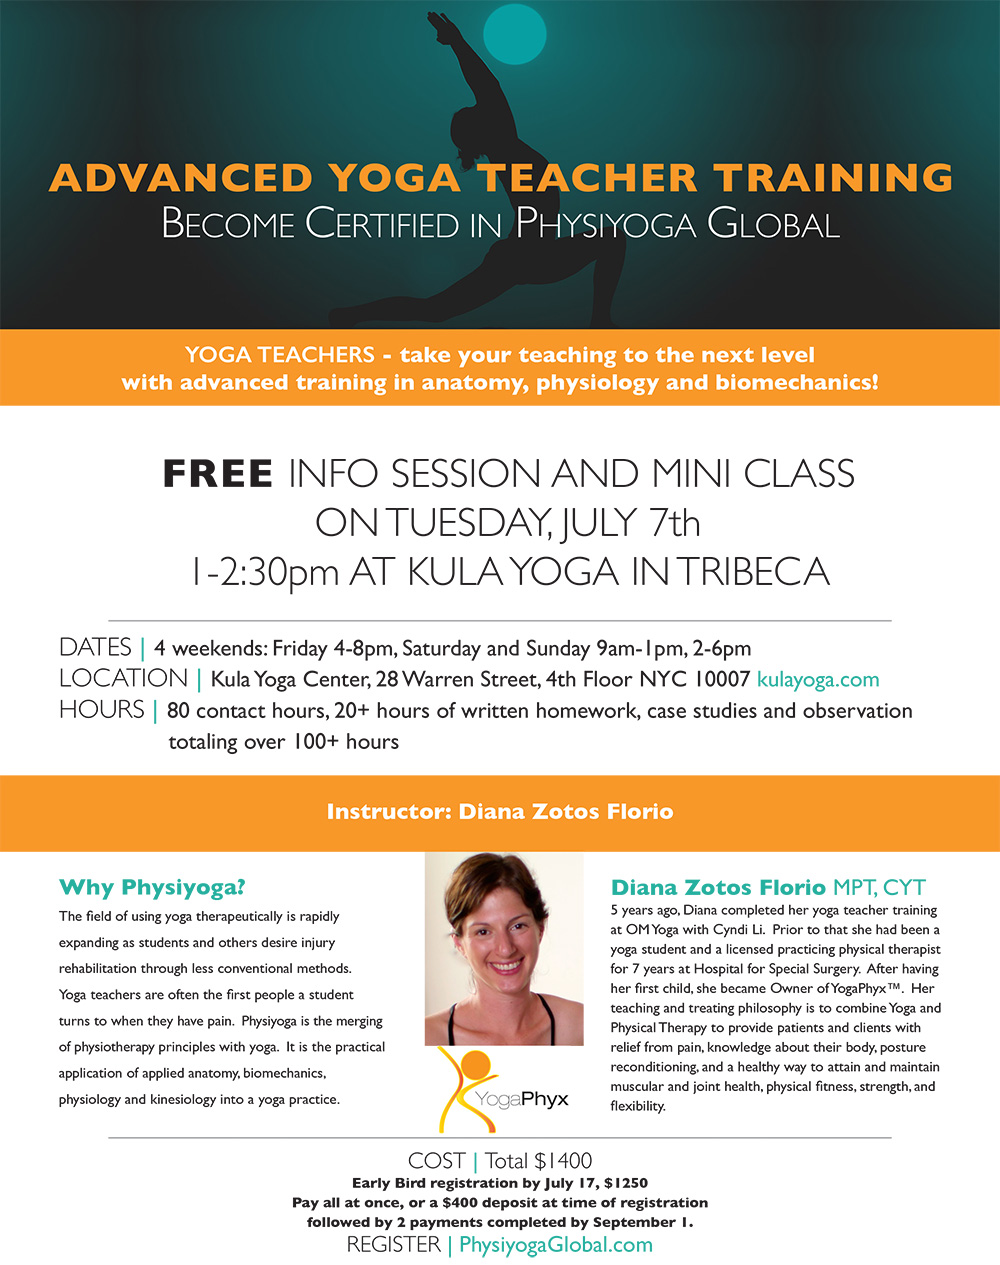 Free info session